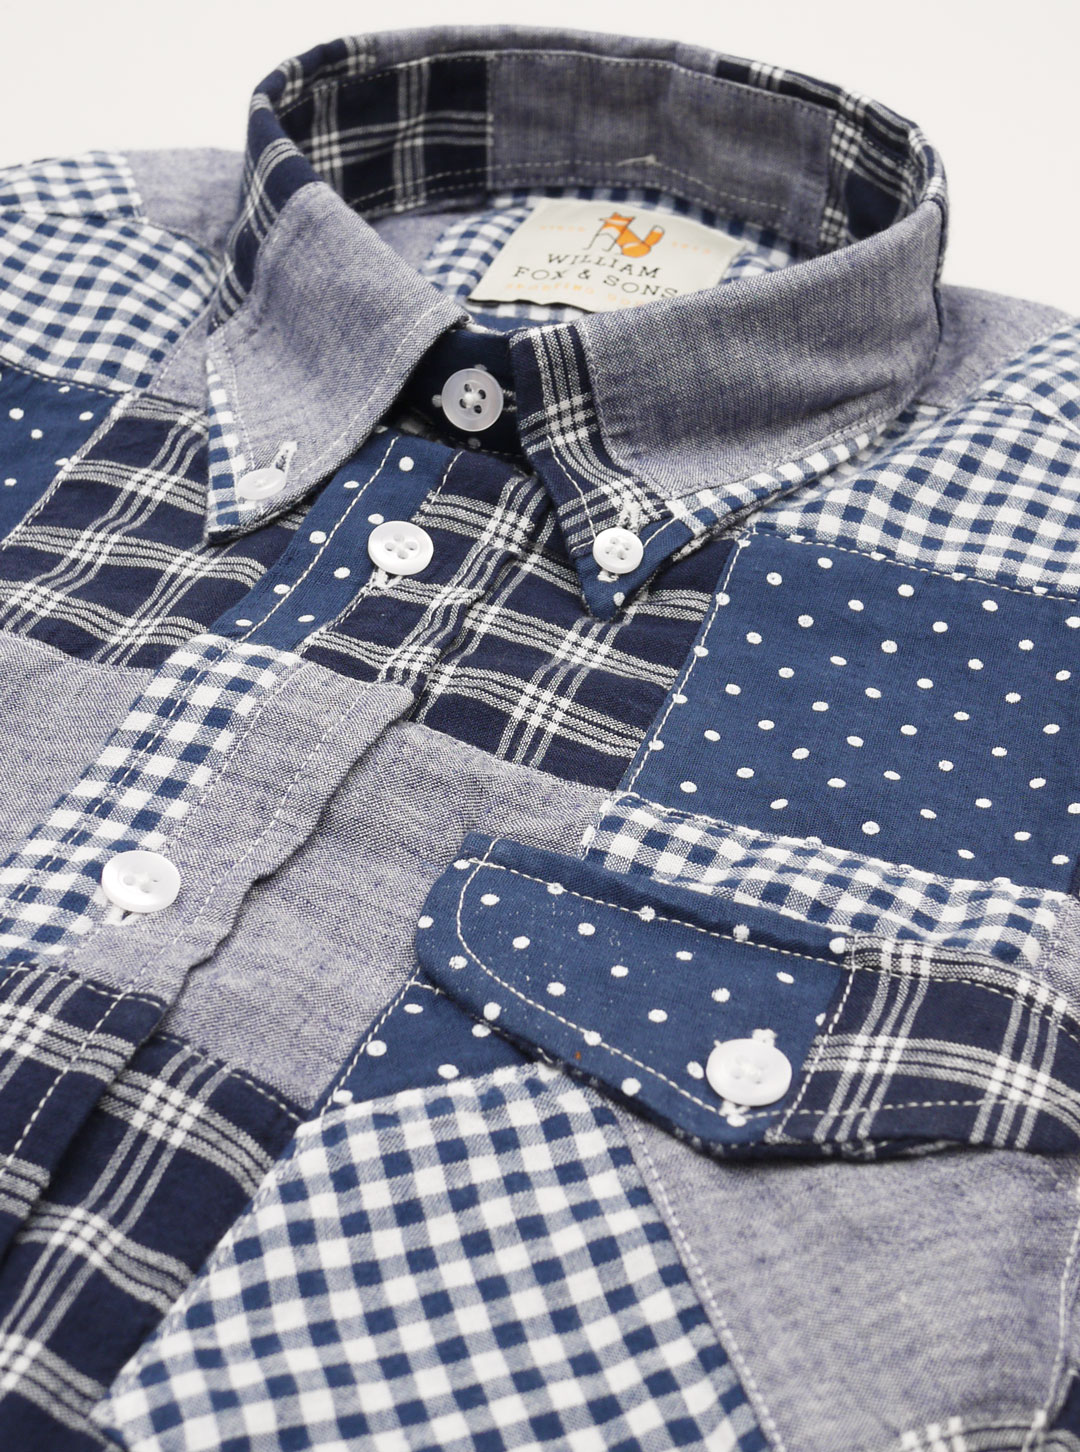 William Fox and Sons Shirts